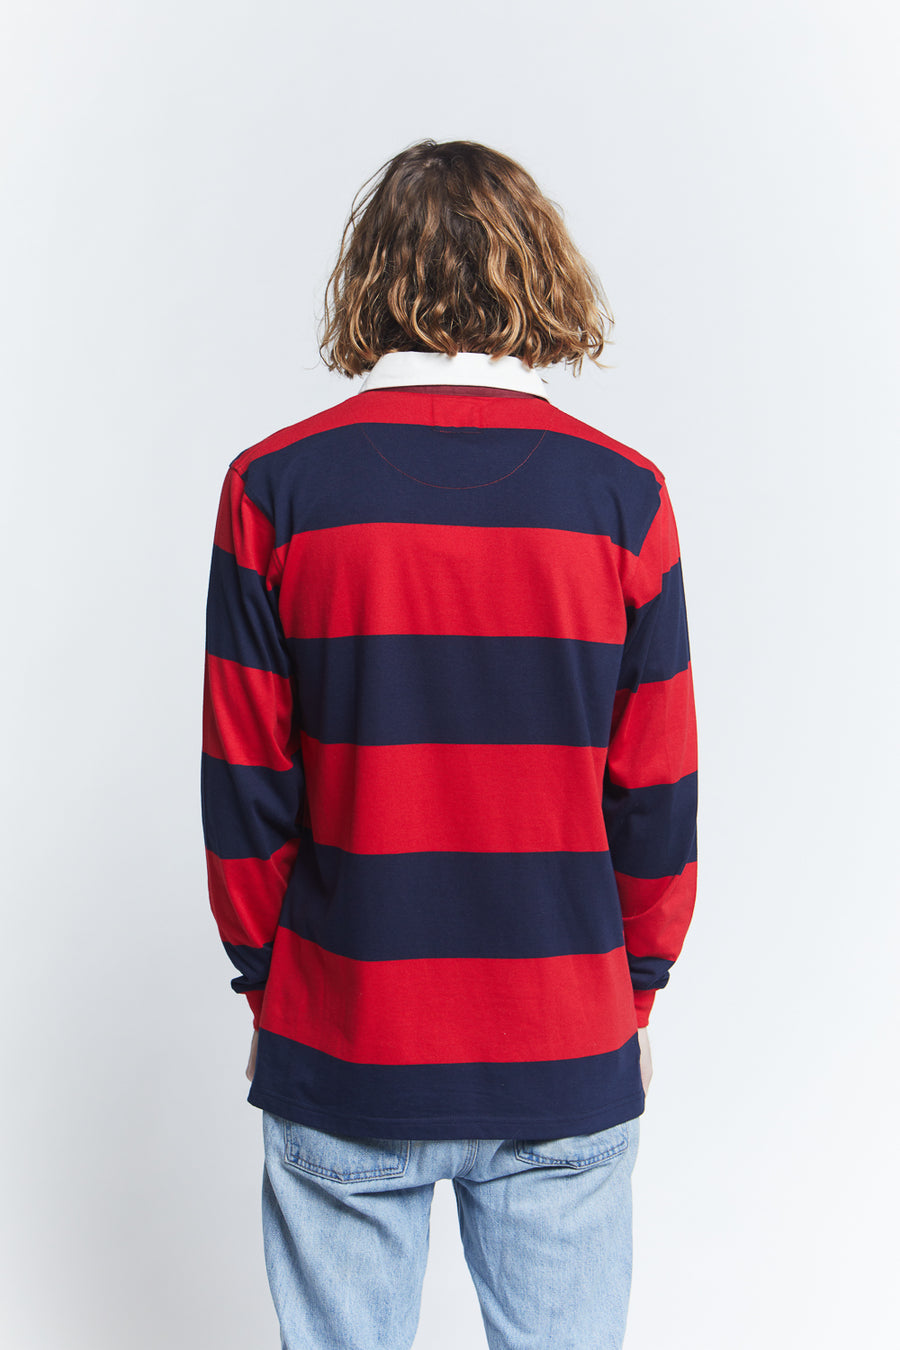 long-sleeve-rugby-cotton-regular-navy-red